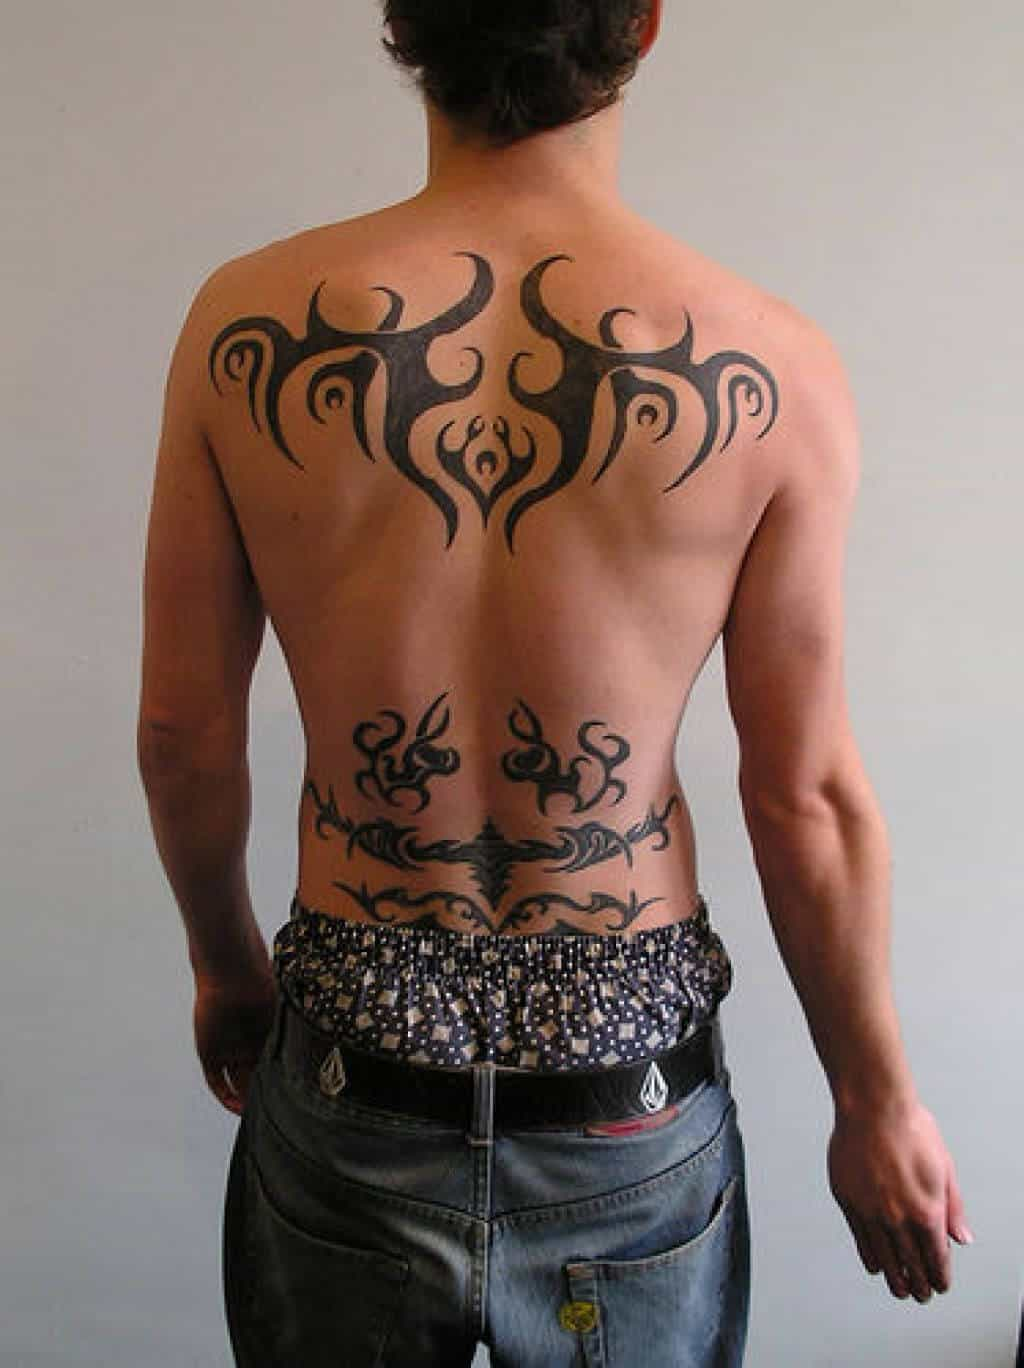 lower back tattoos for men ideas and designs for guys